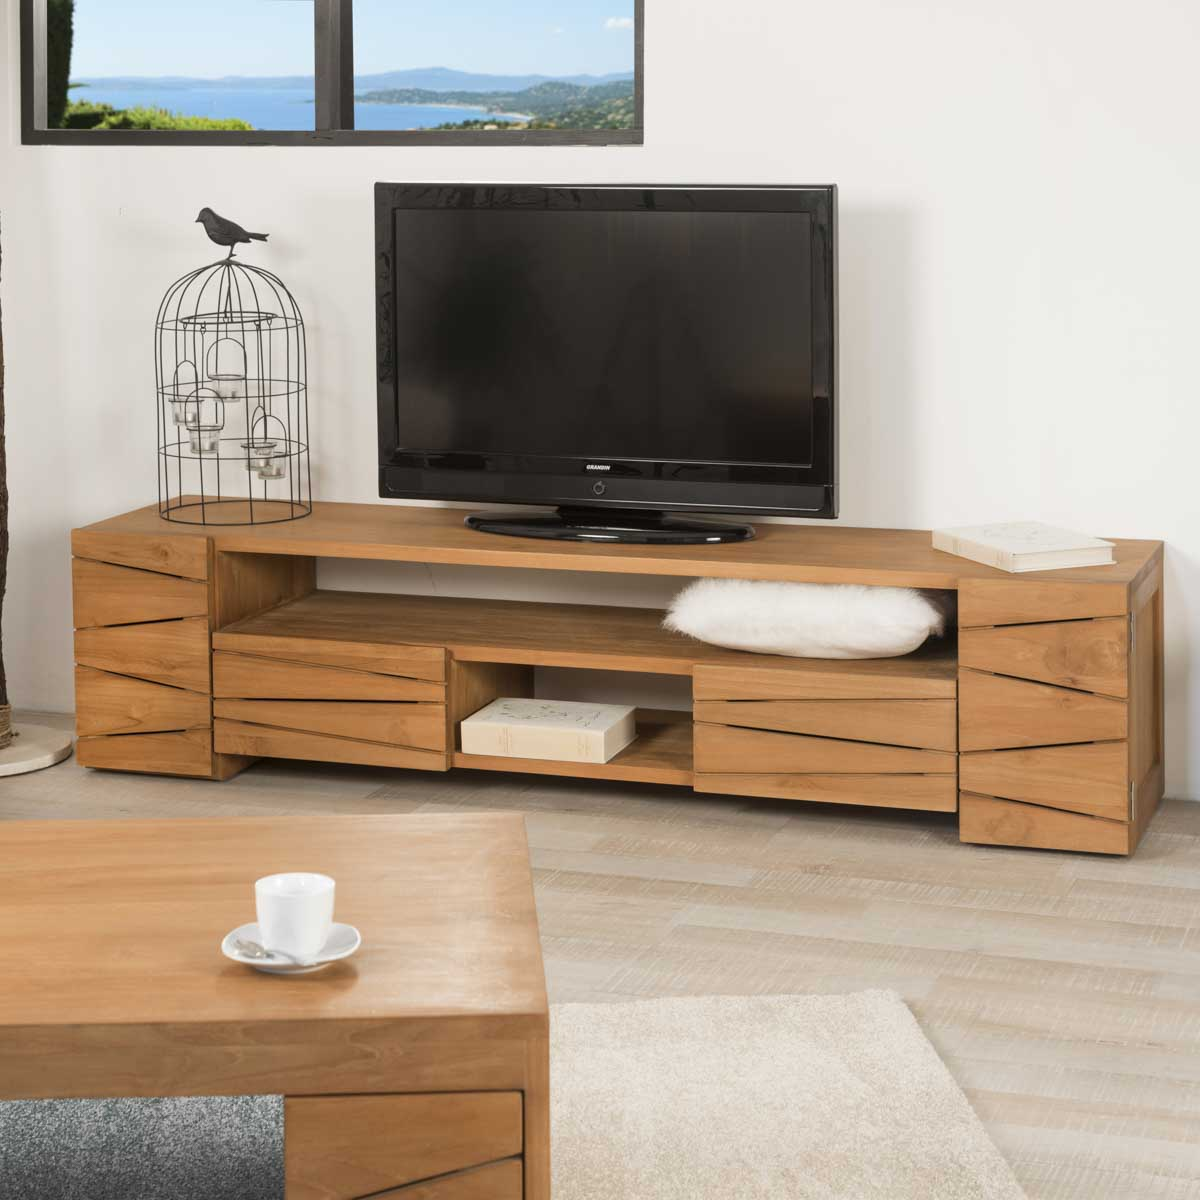 Meuble Tv Teck Meuble Tv Bois Naturel Rectangle S R Nit 170  # Table Basse Et Meuble Tv